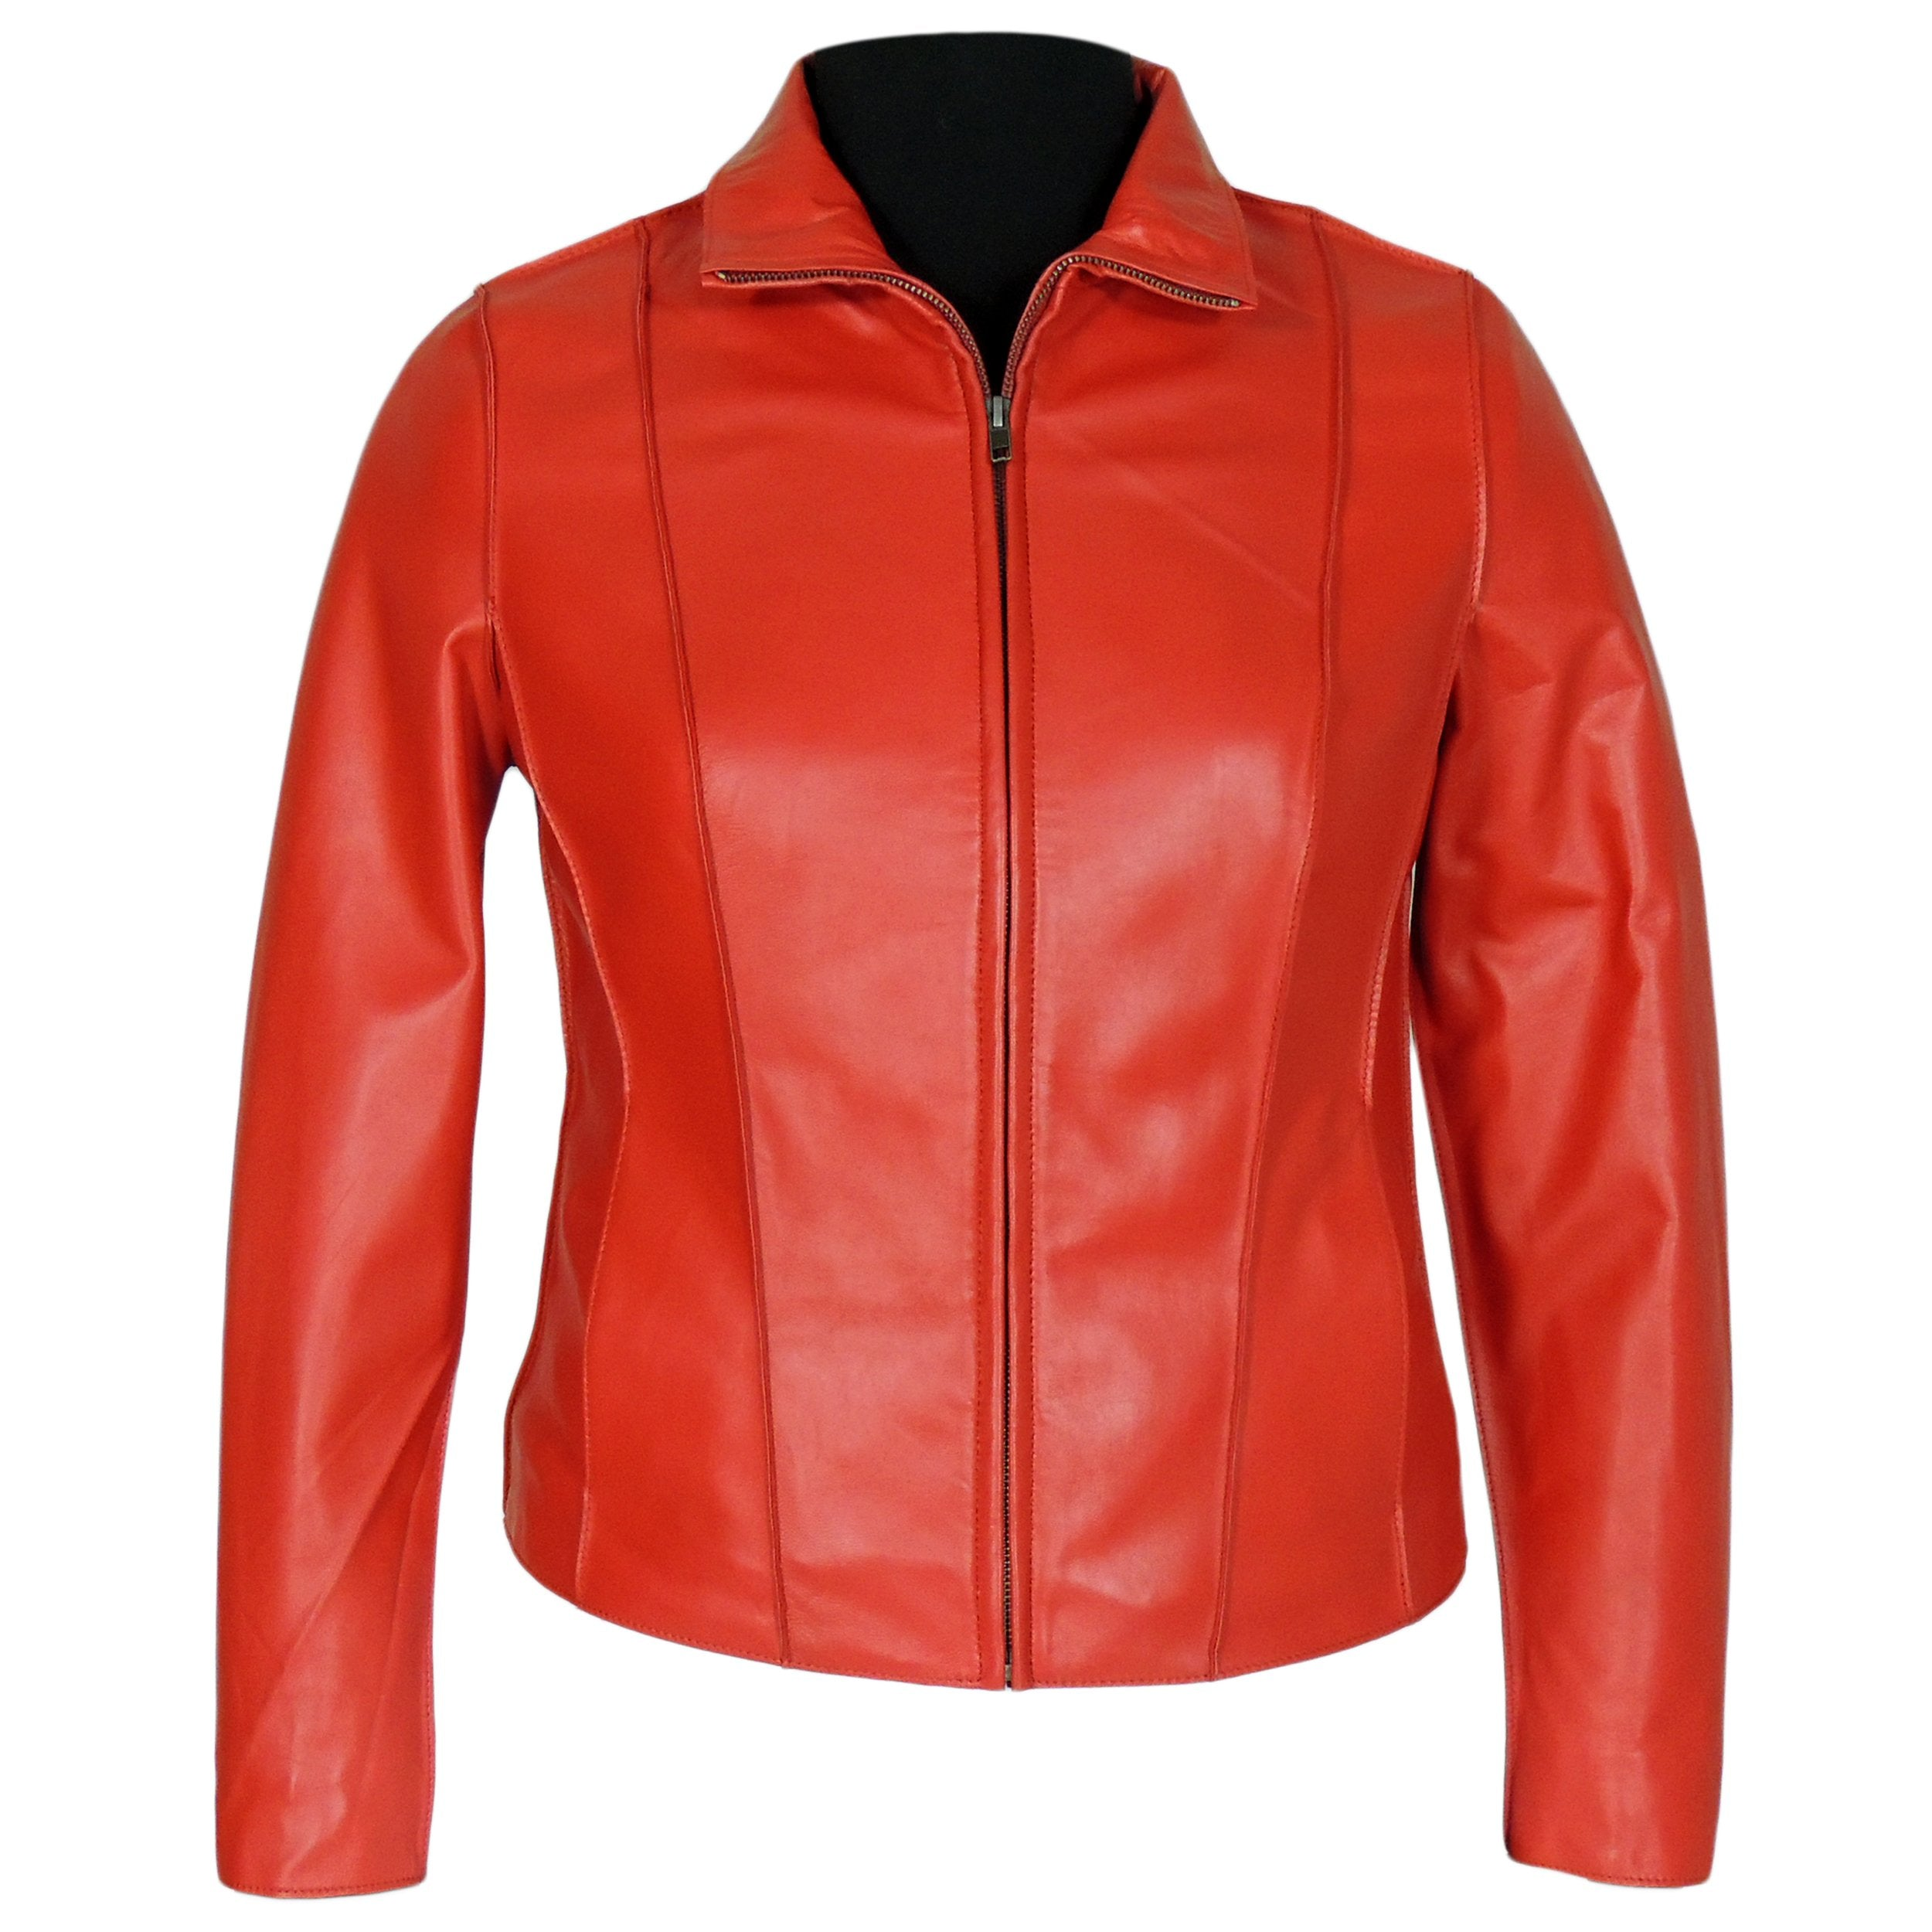 Aaliya Womens Sheepskin Leather Jacket - Discounted! - fadcloset